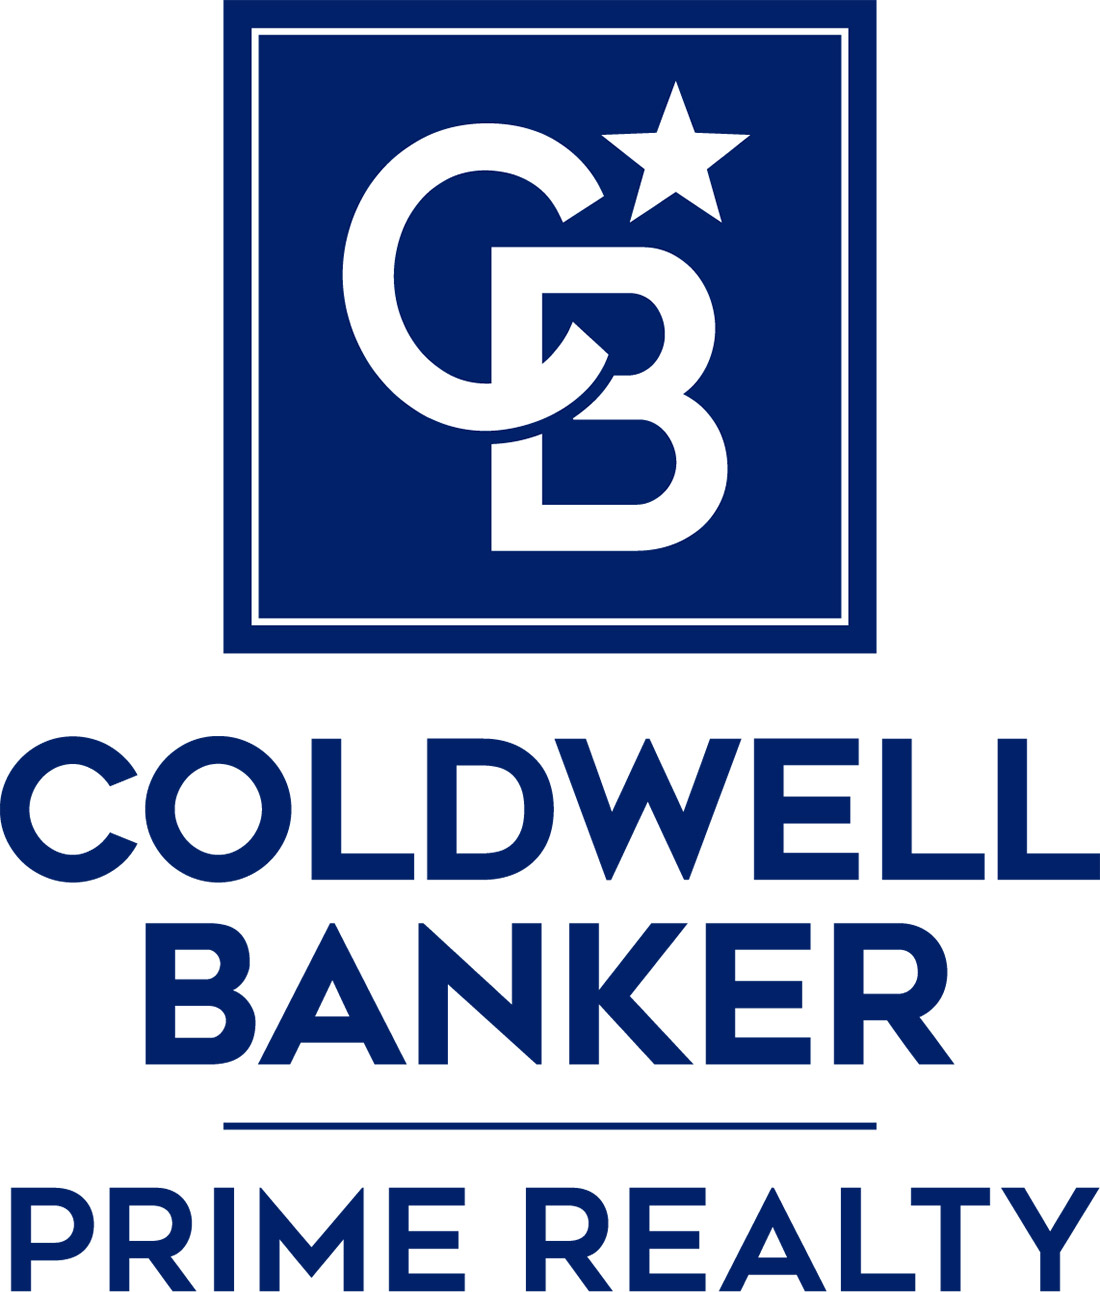 Kimberly Owsley - Coldwell Banker Prime Realty - Carbondale, IL Logo